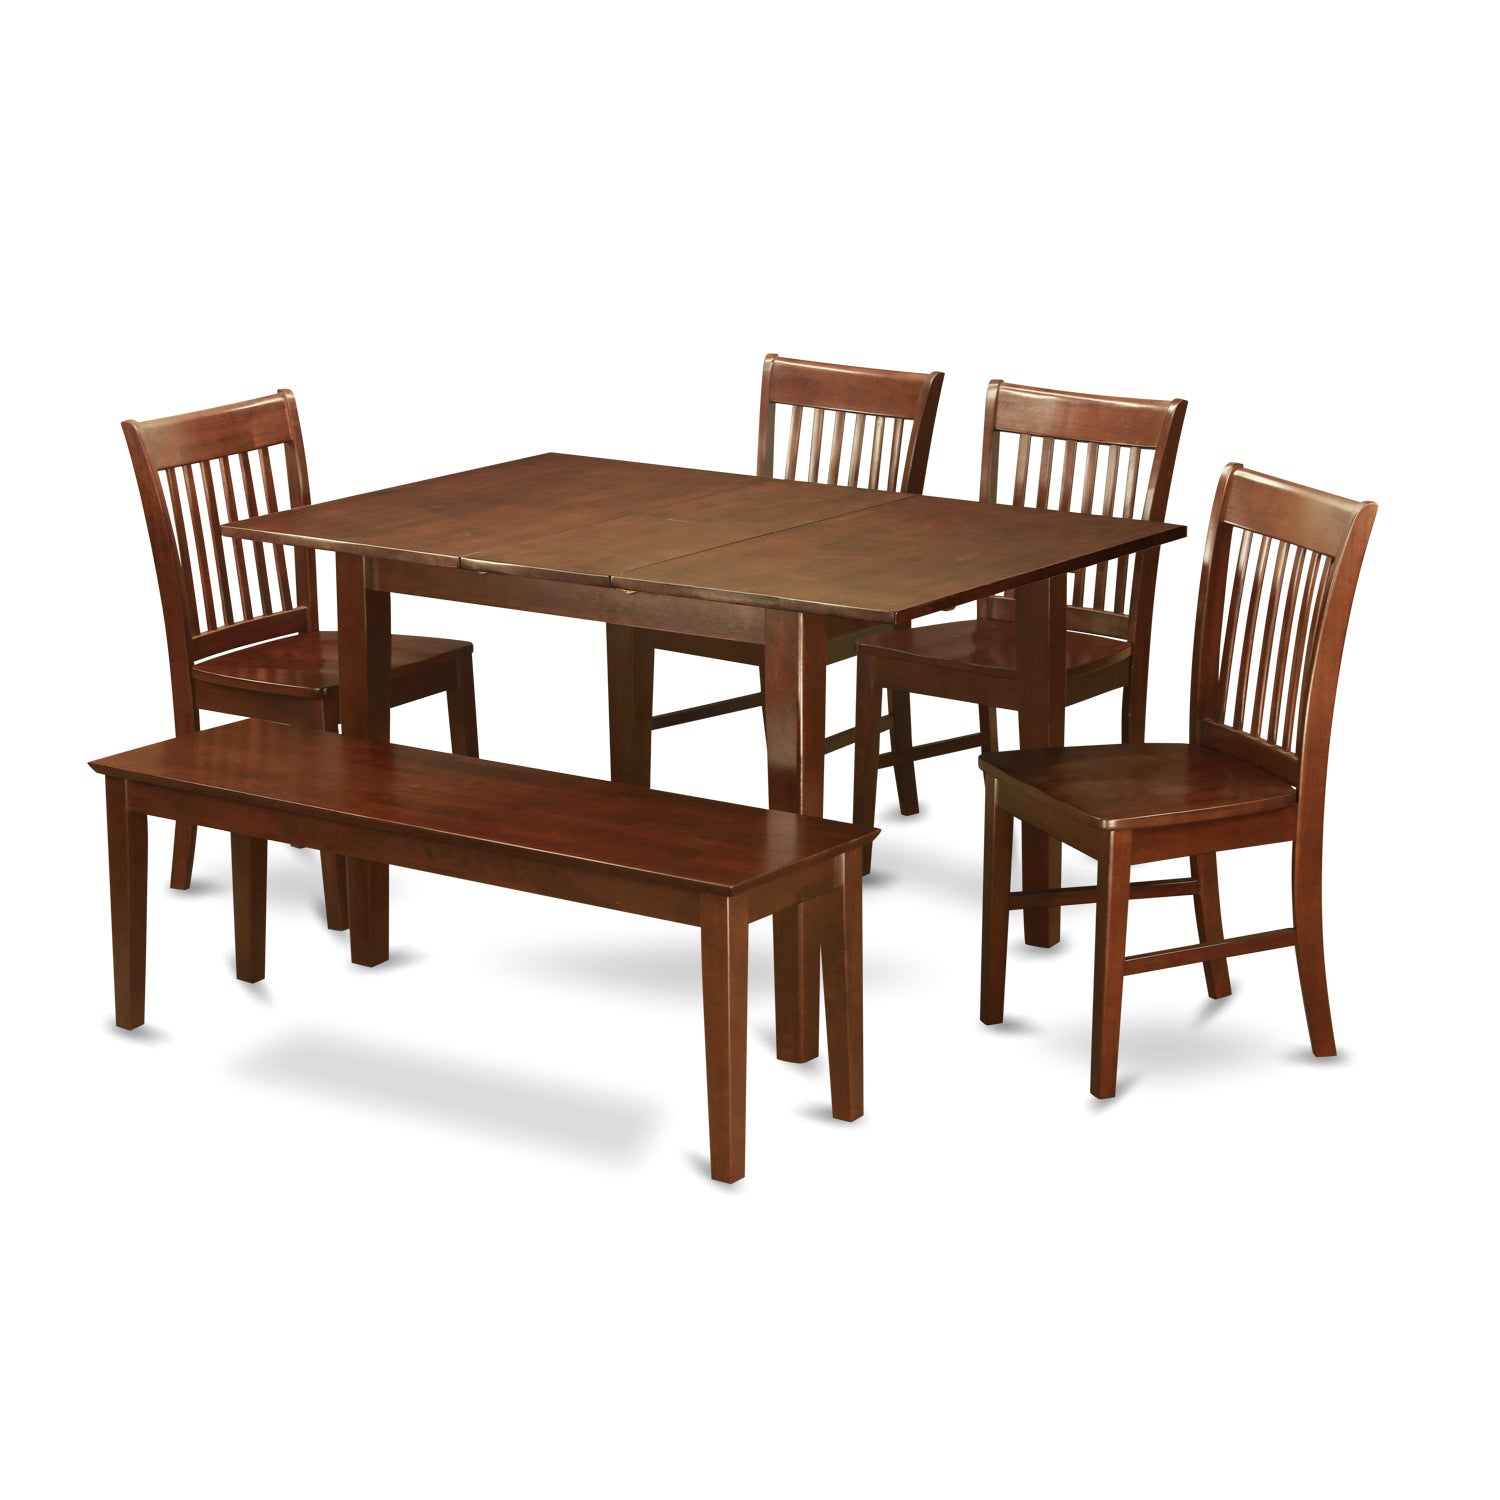 Excellent Psno6C Mah 4 Chair And Dining Bench 6 Piece Dining Table Set Creativecarmelina Interior Chair Design Creativecarmelinacom